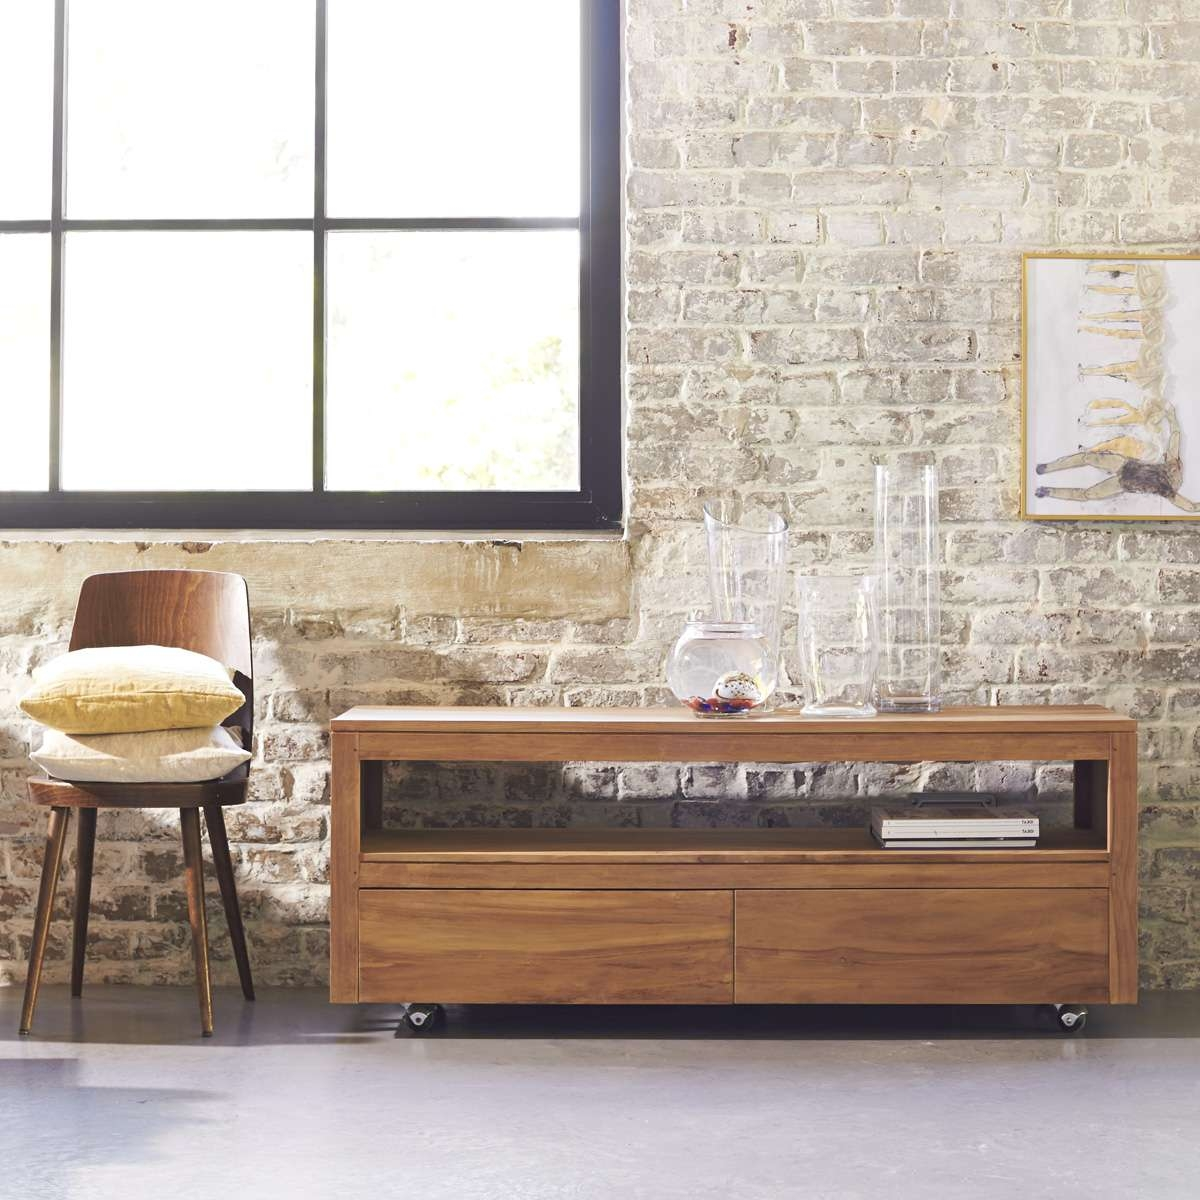 Tv : 100cm Tv Stands Engaging 100 Cm Long Tv Stands' Top 100 Cm Throughout 100cm Tv Stands (View 8 of 15)